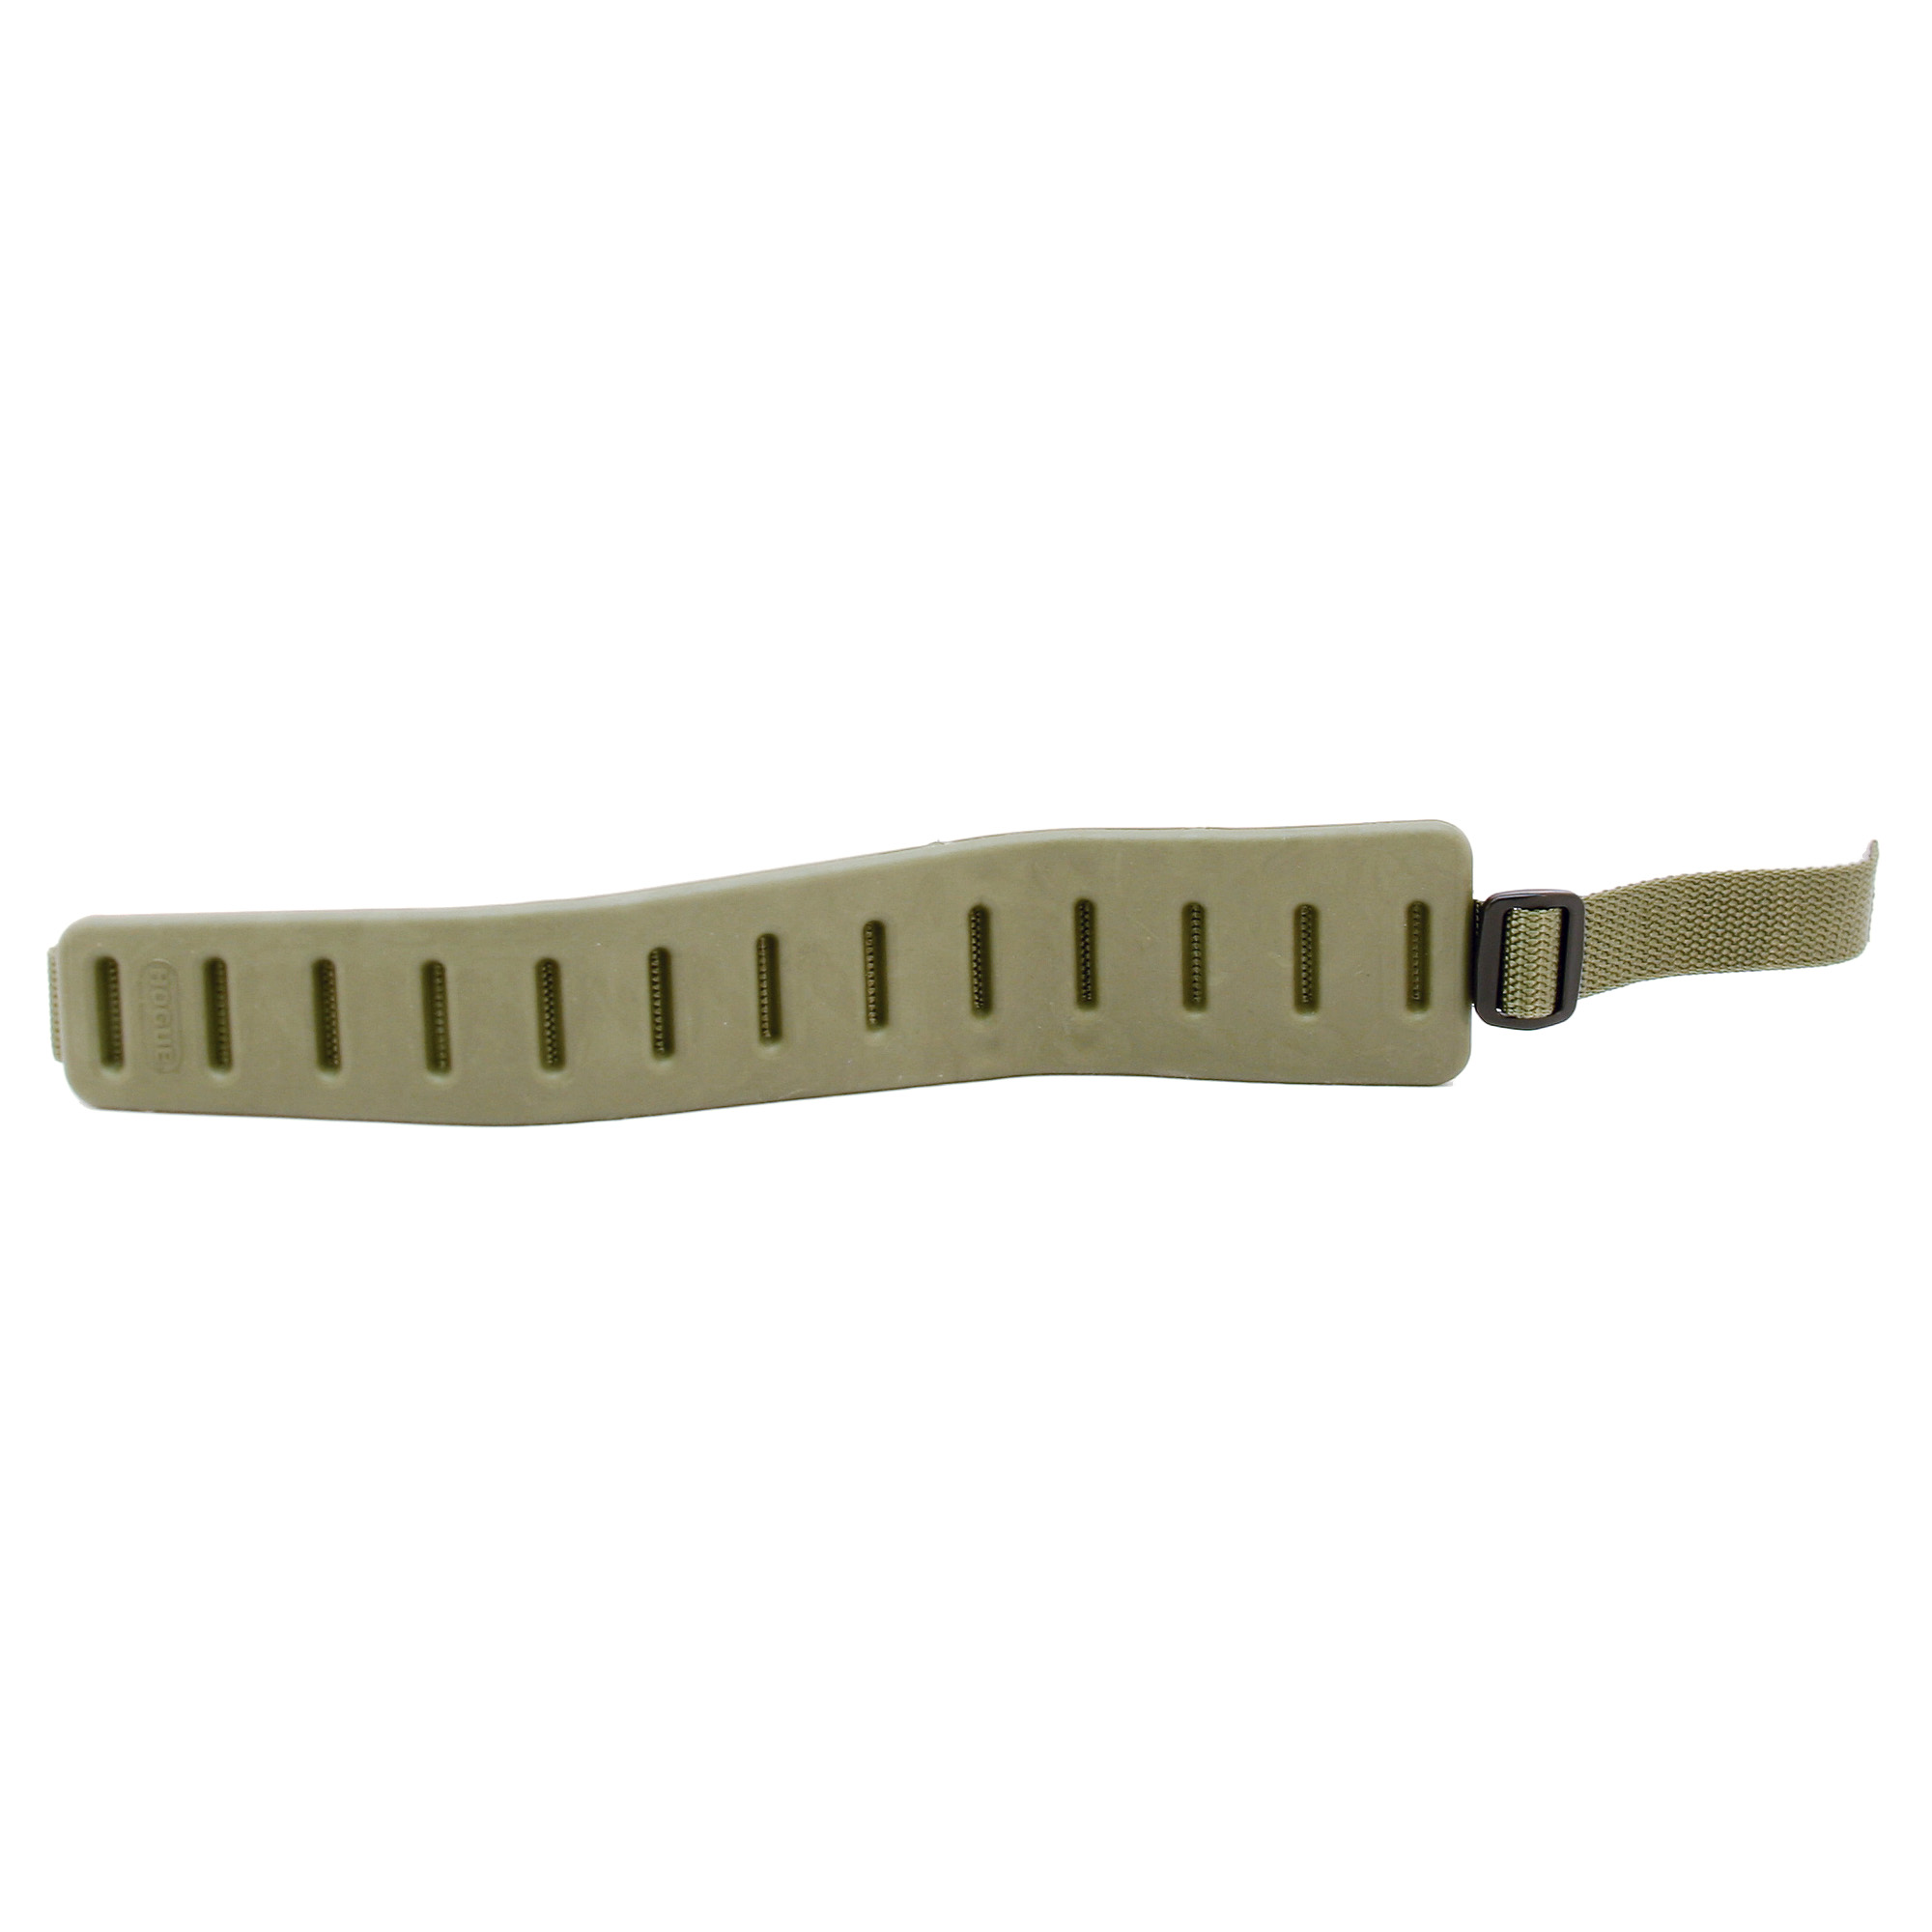 OD Green nylon sling made by Hogue.